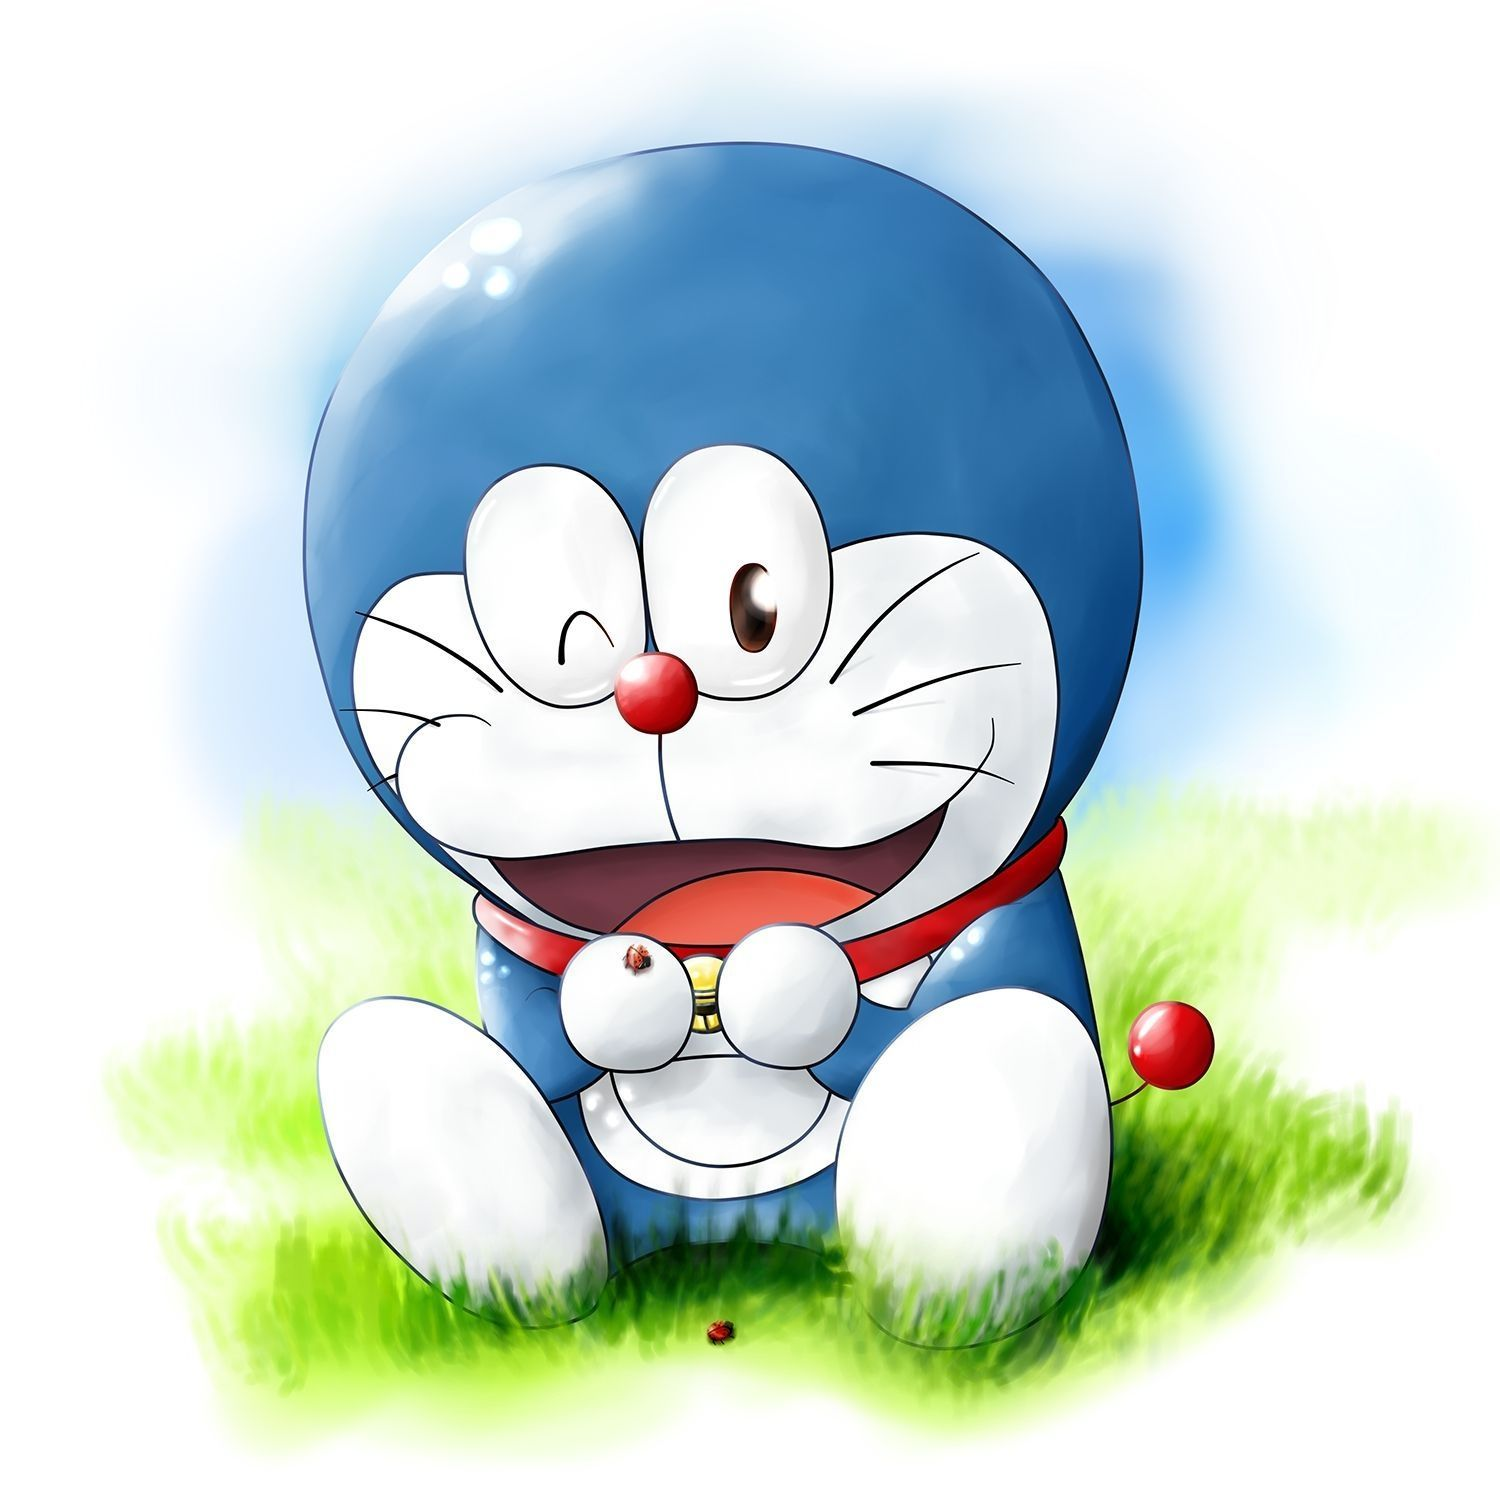 Pinterest In 2019 Doraemon Wallpapers Doraemon Doraemon